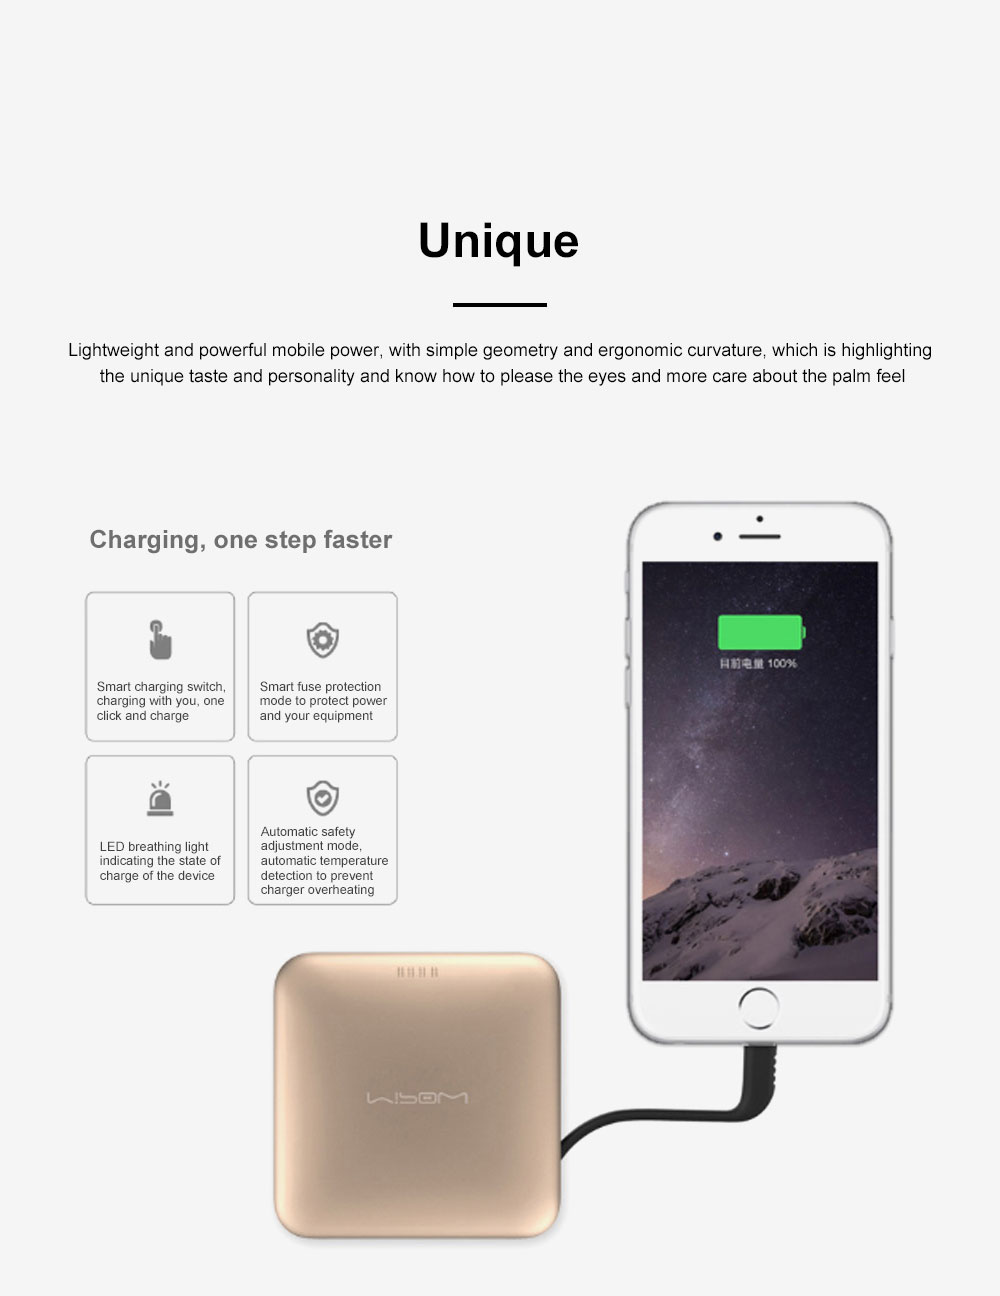 Mipow Portable Mobile Power 9000 Mah Large Capacity Mobile Phone Ultra-thin Charging Treasure Comes With Line specially for iPod iPhone iPad 5